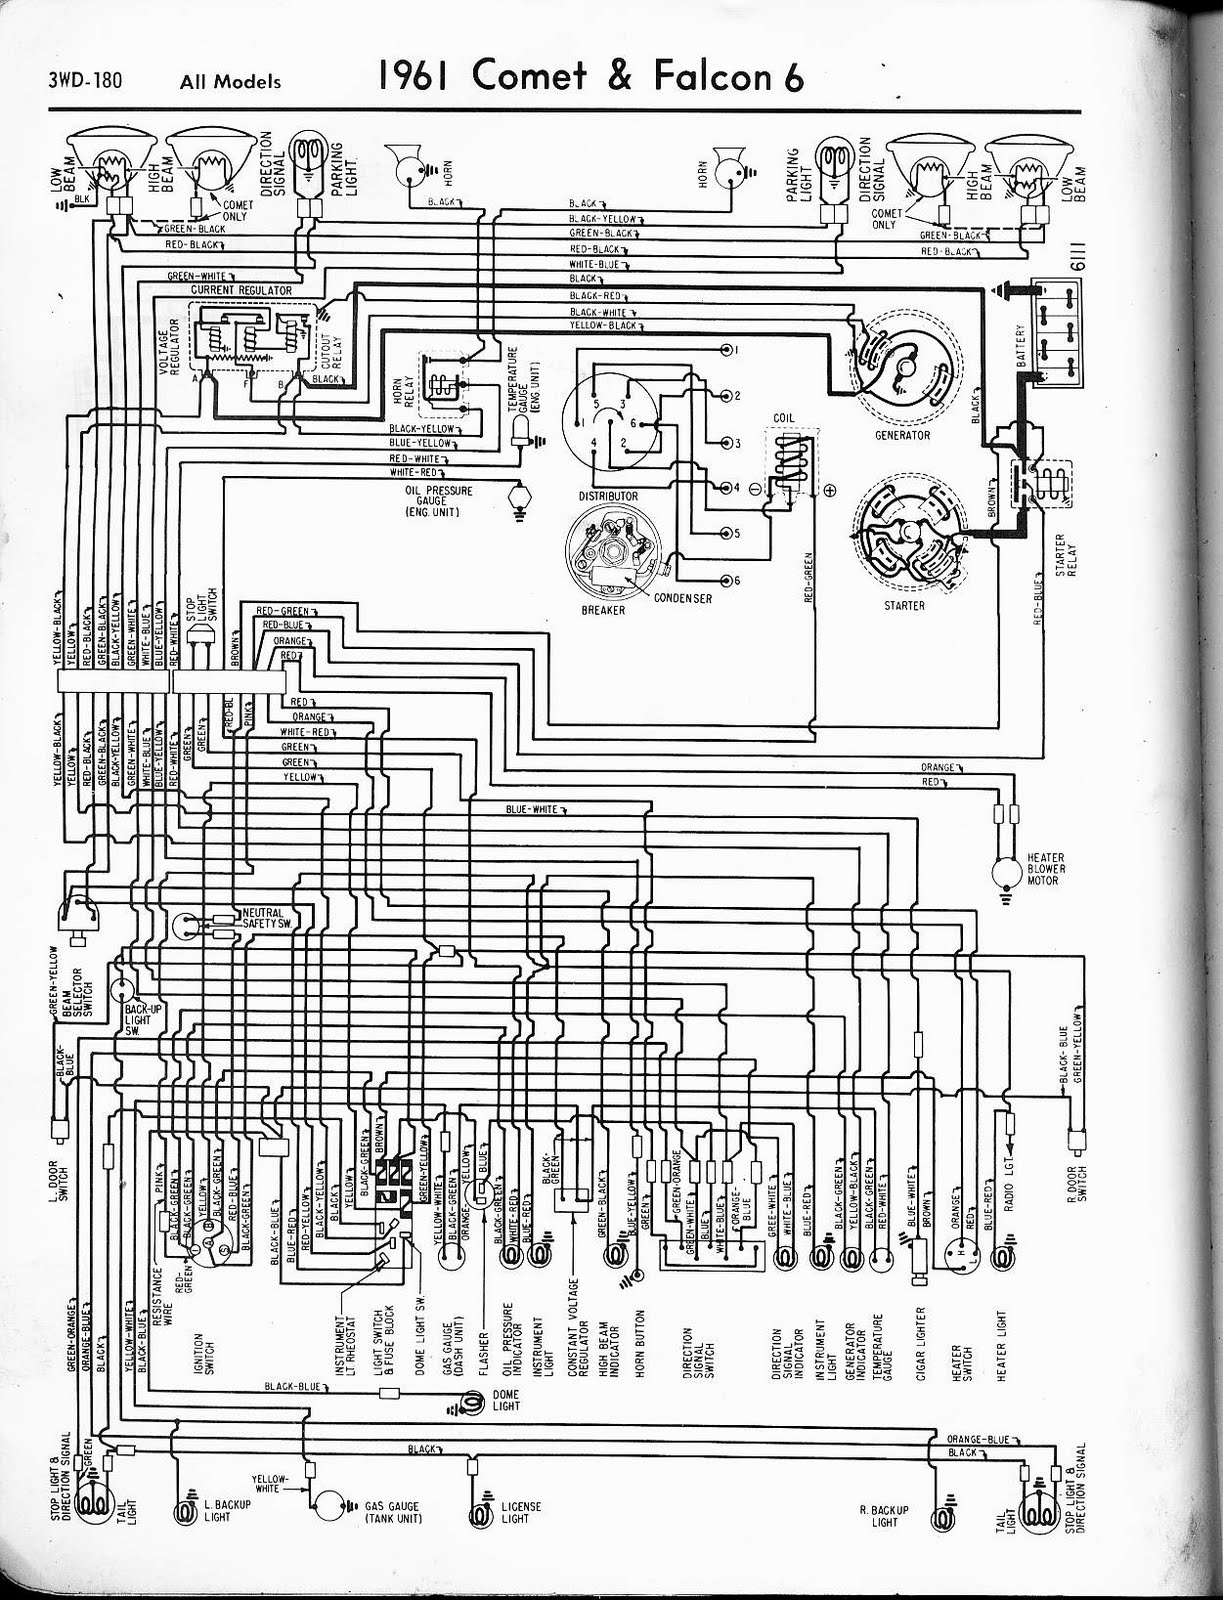 free ford van wiring diagrams youth double wing playbook asian, Wiring diagram